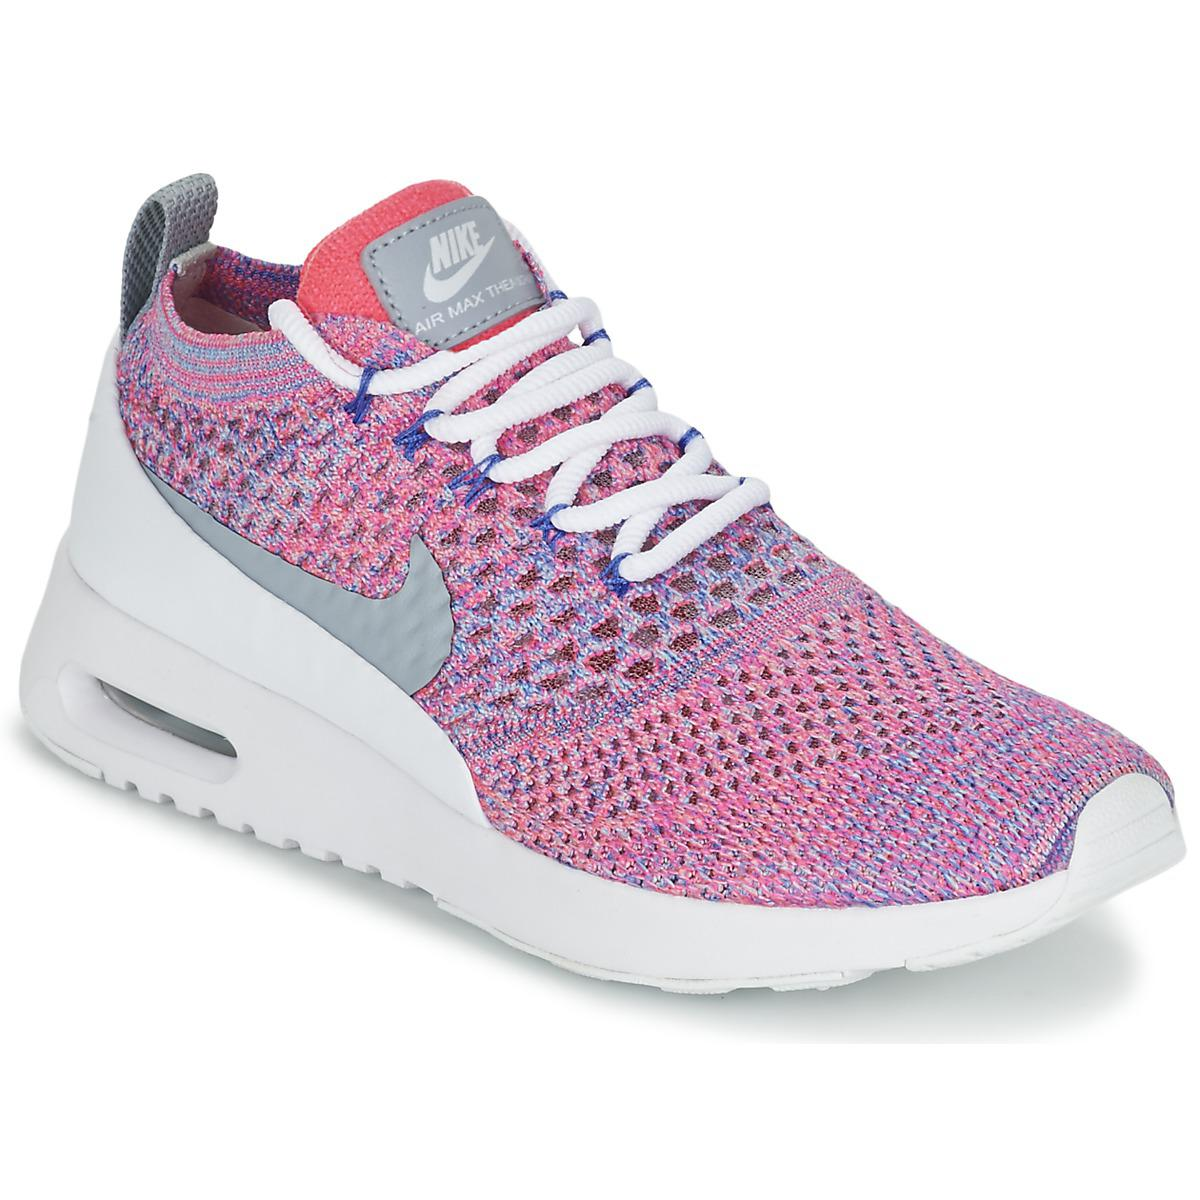 50eea5d6c4ad Nike Air Max Thea Ultra Flyknit W Shoes (trainers) in Pink - Lyst